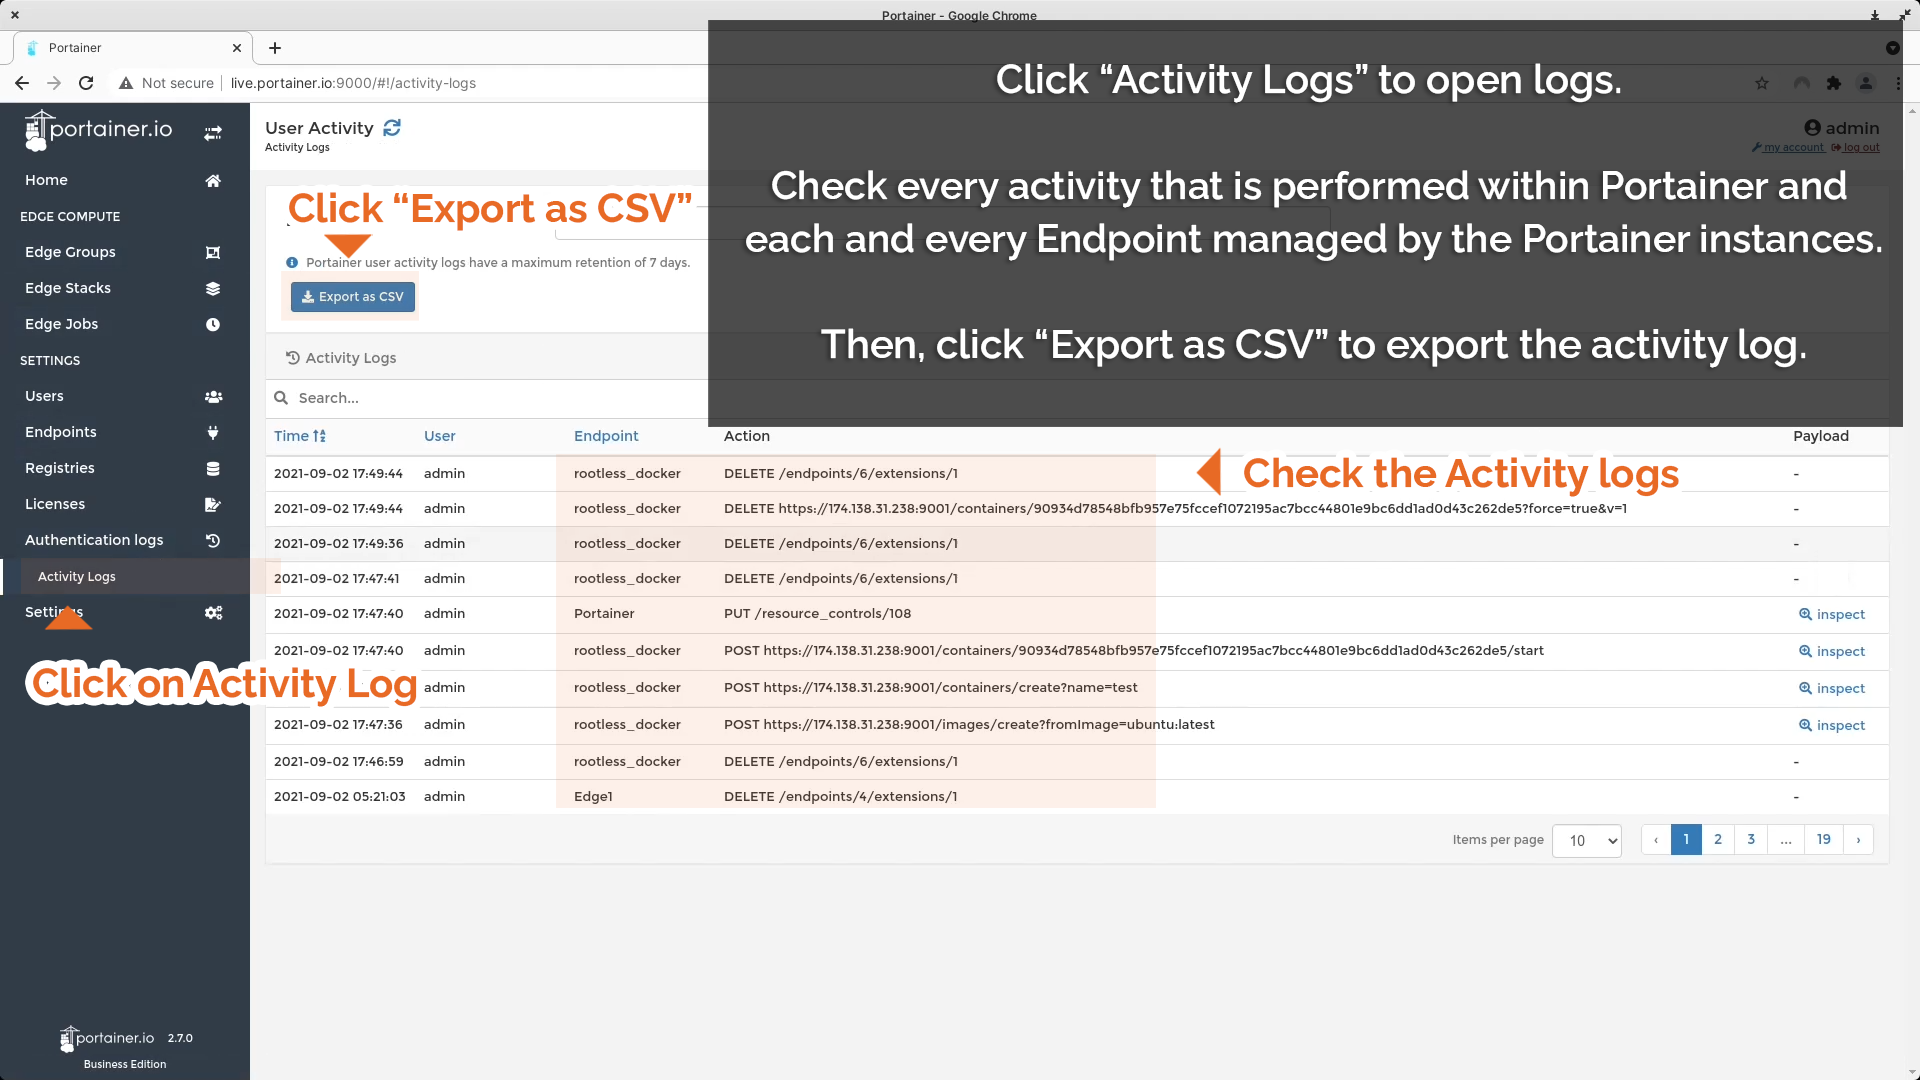 Click on Activity Logs to access logs to check Endpoints. Then, click